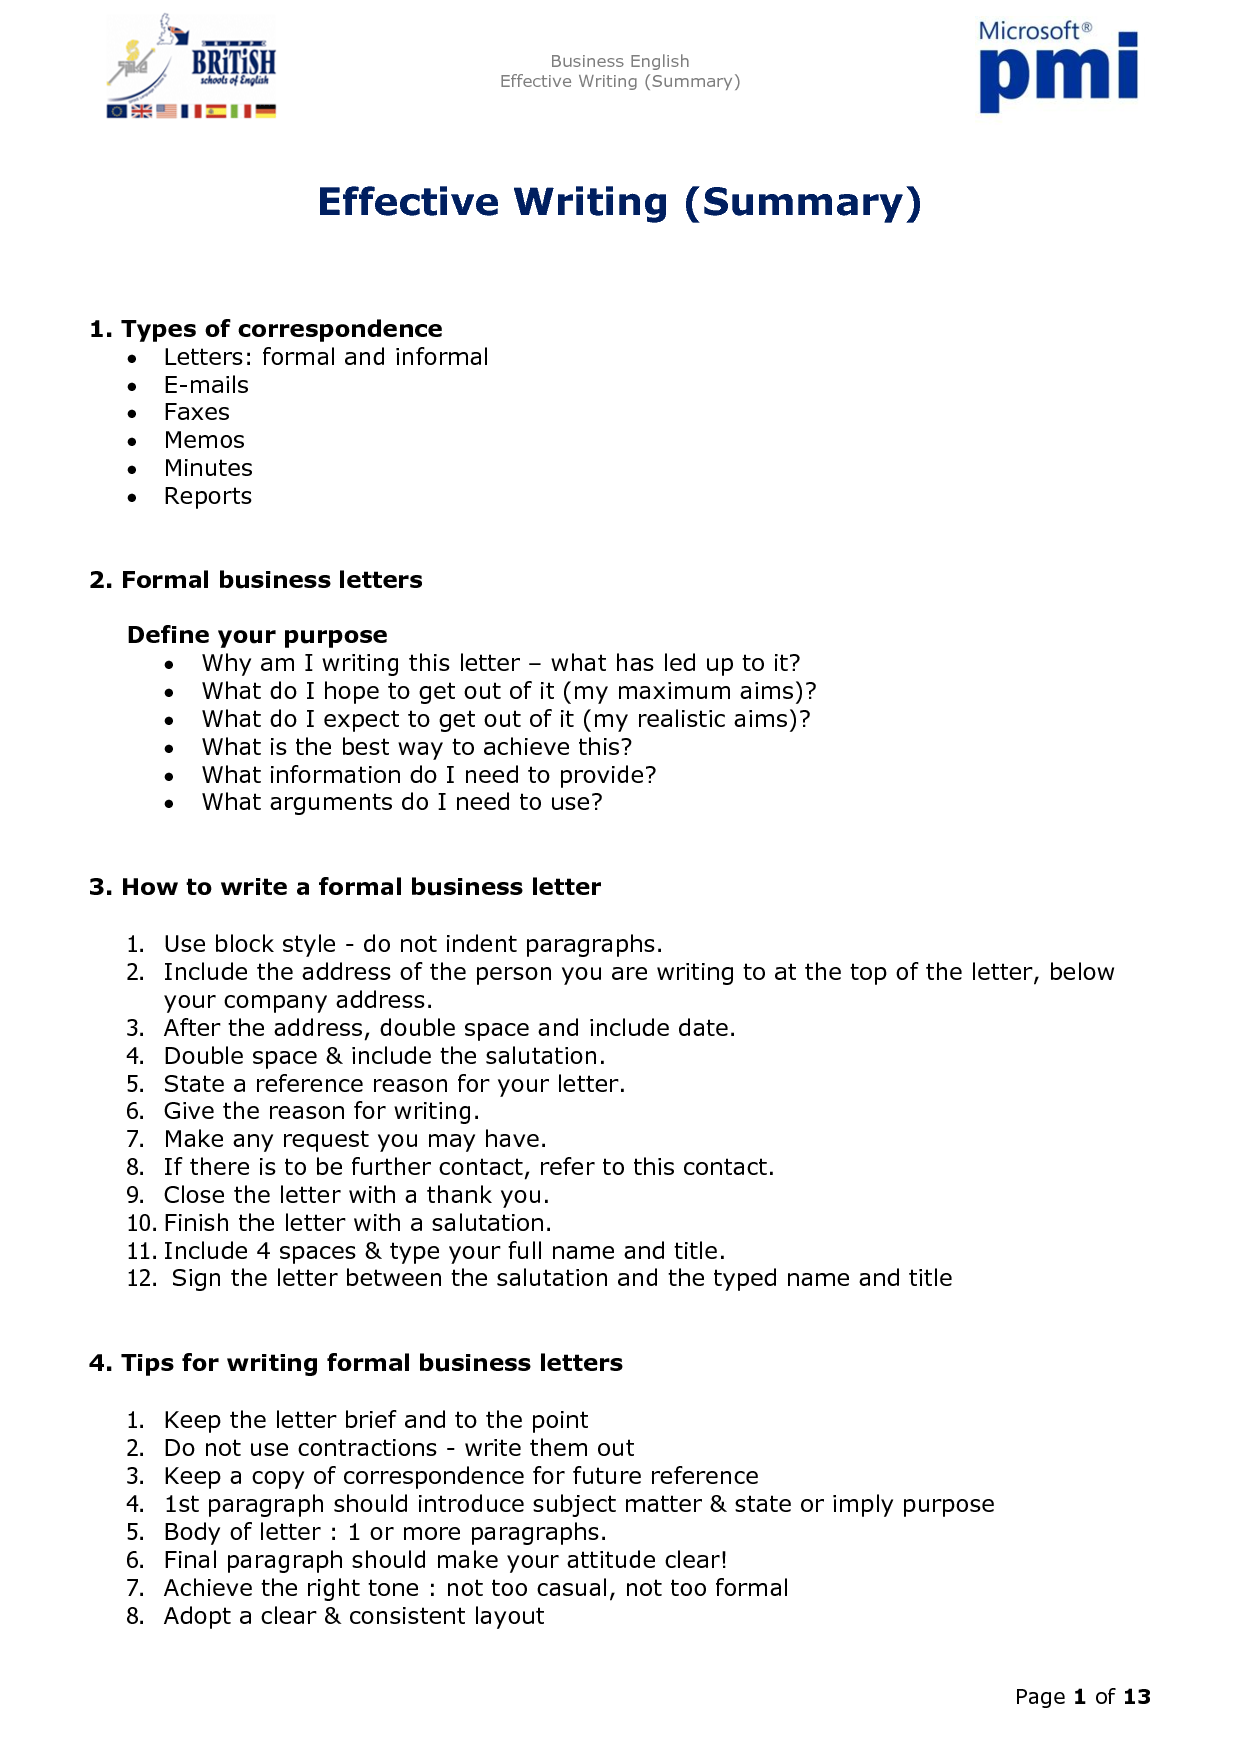 Business letter and report writing